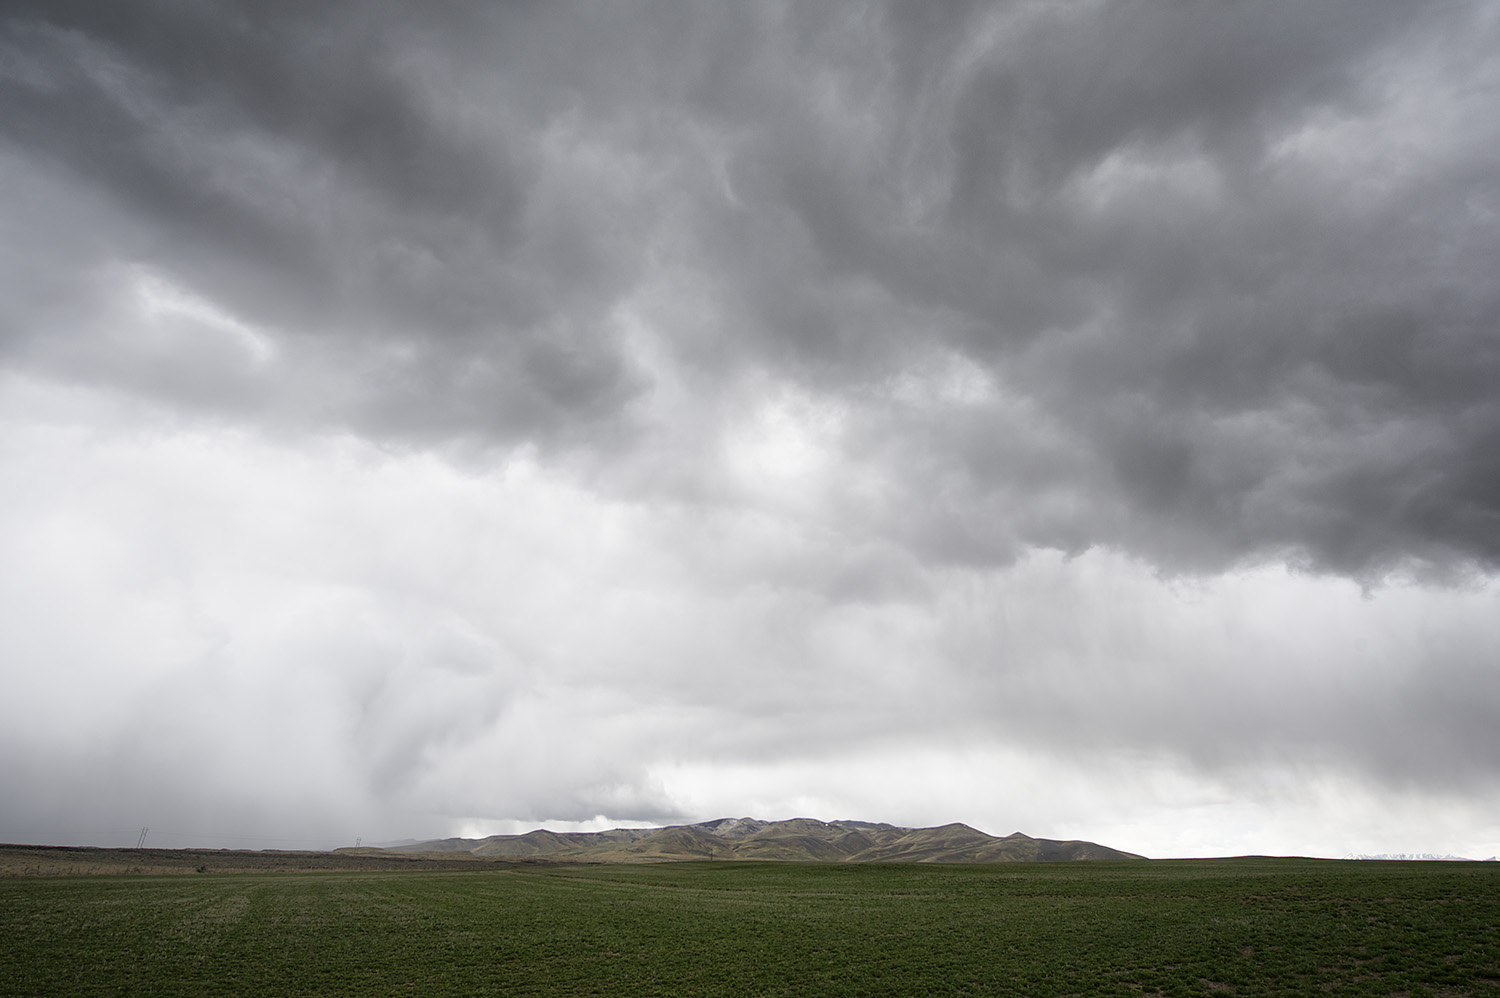 Picabo Hills & Spring Squall